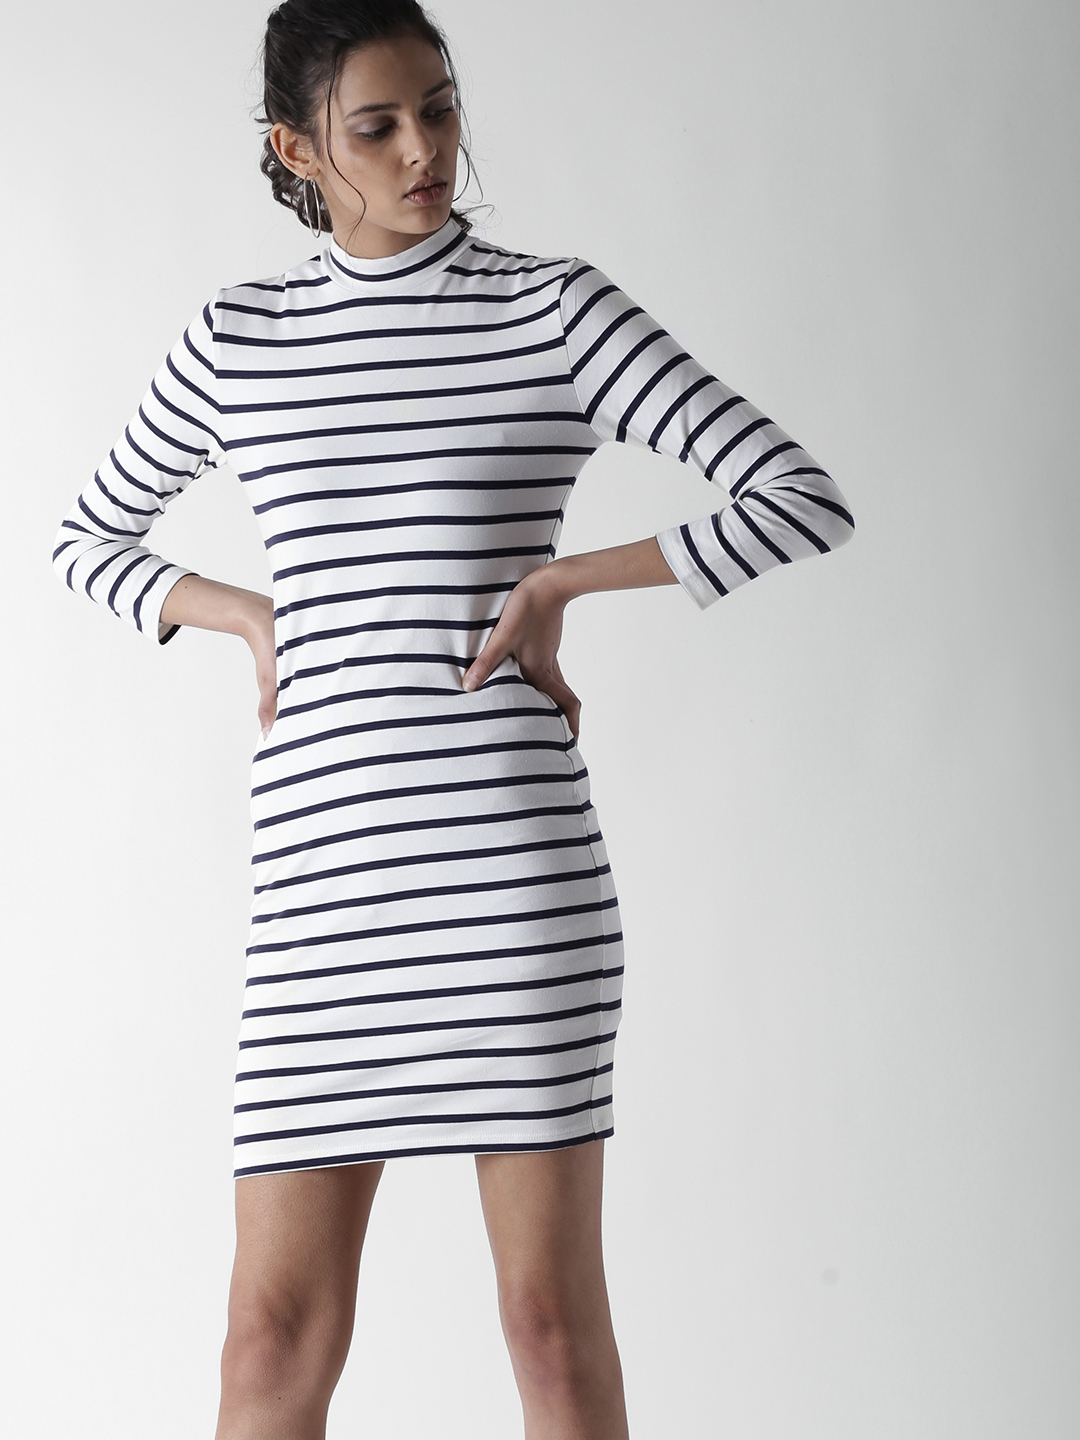 781a538cdb2 Buy FOREVER 21 Women White   Navy Blue Striped Bodycon Dress ...